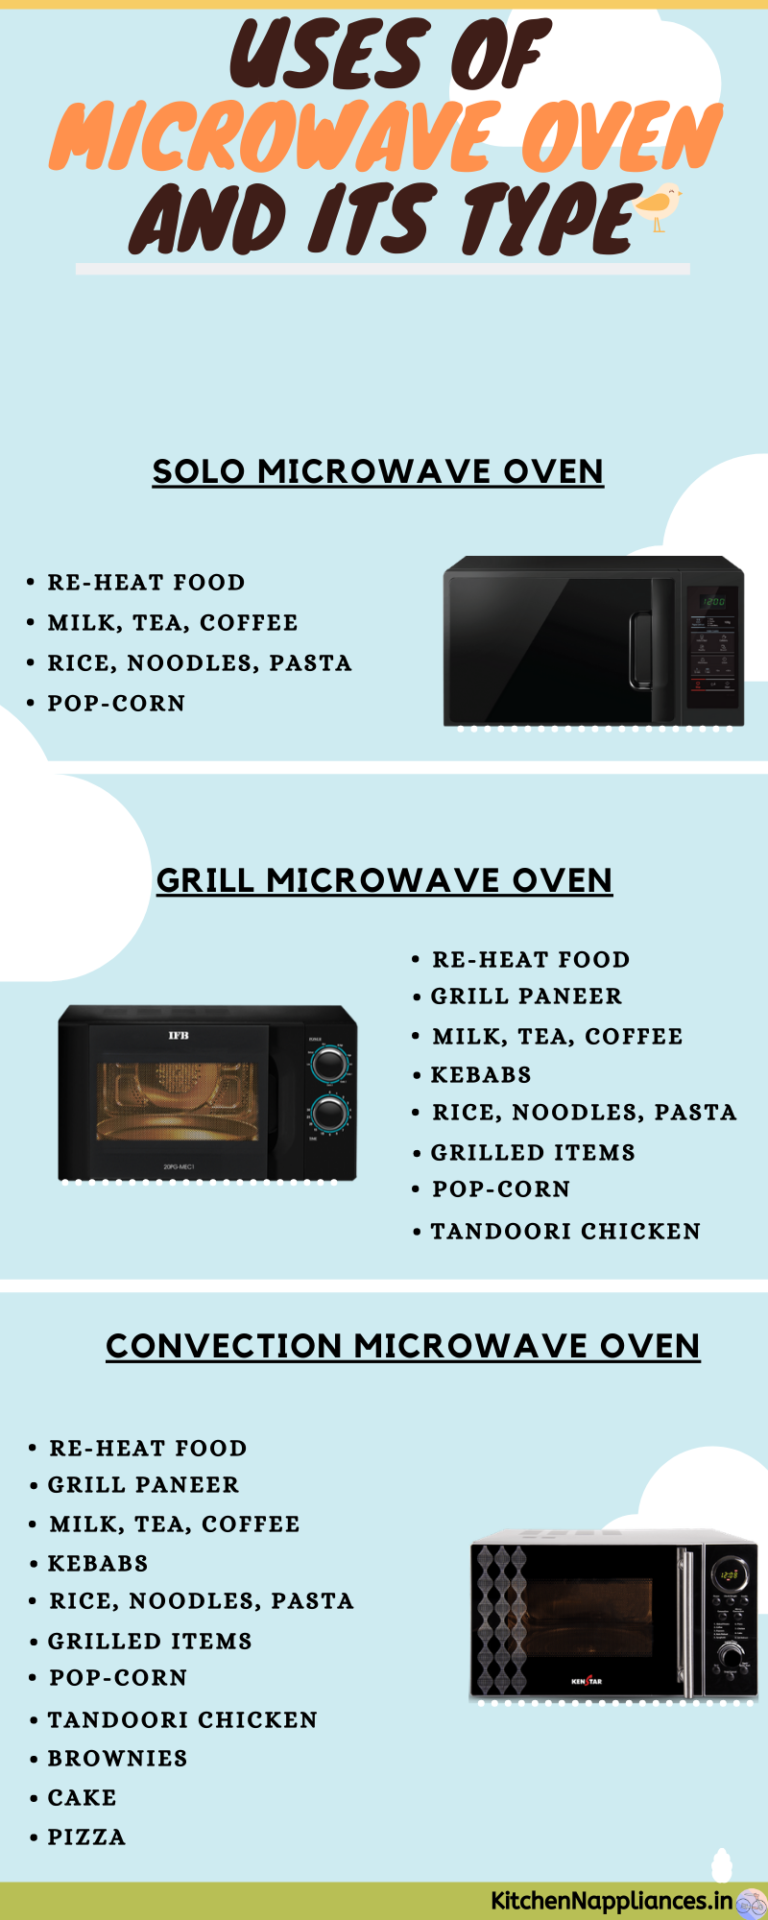 types of microwave in india